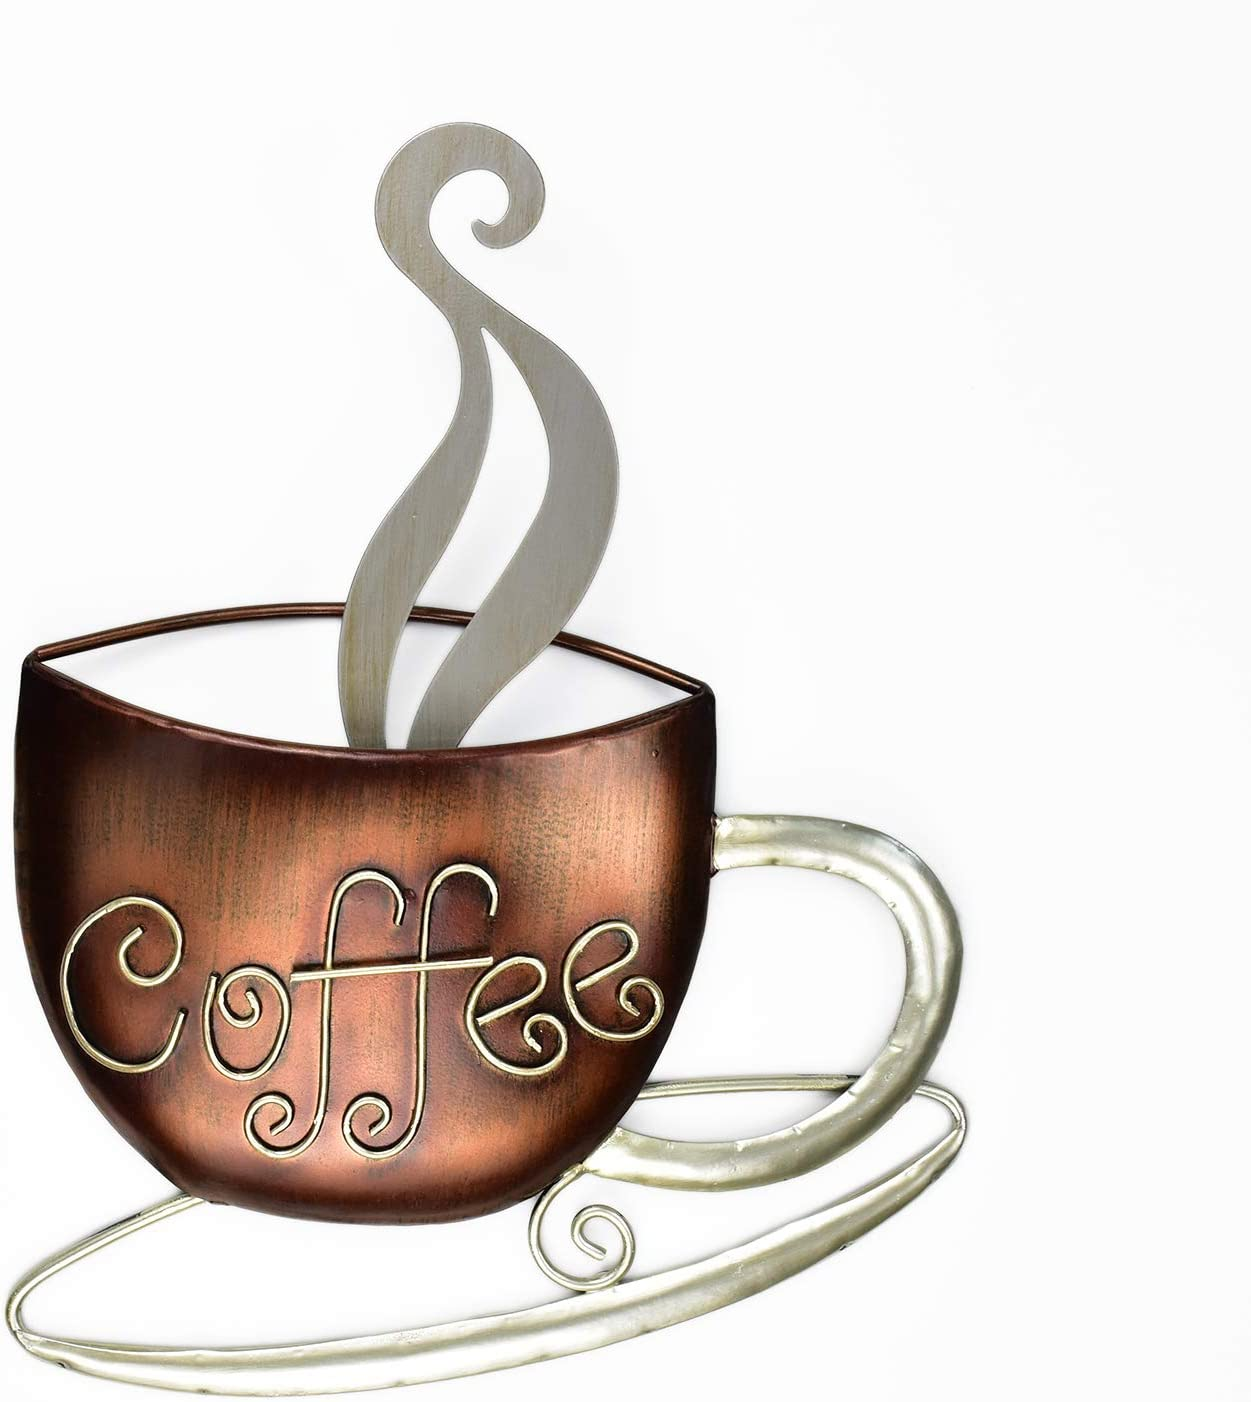 Aayla Metal Coffee Cup Wall Hanging Sculpture, for Home Kitchen Restaurants and Coffee Shops, in Metal with Brown and Champagne Color (14.75